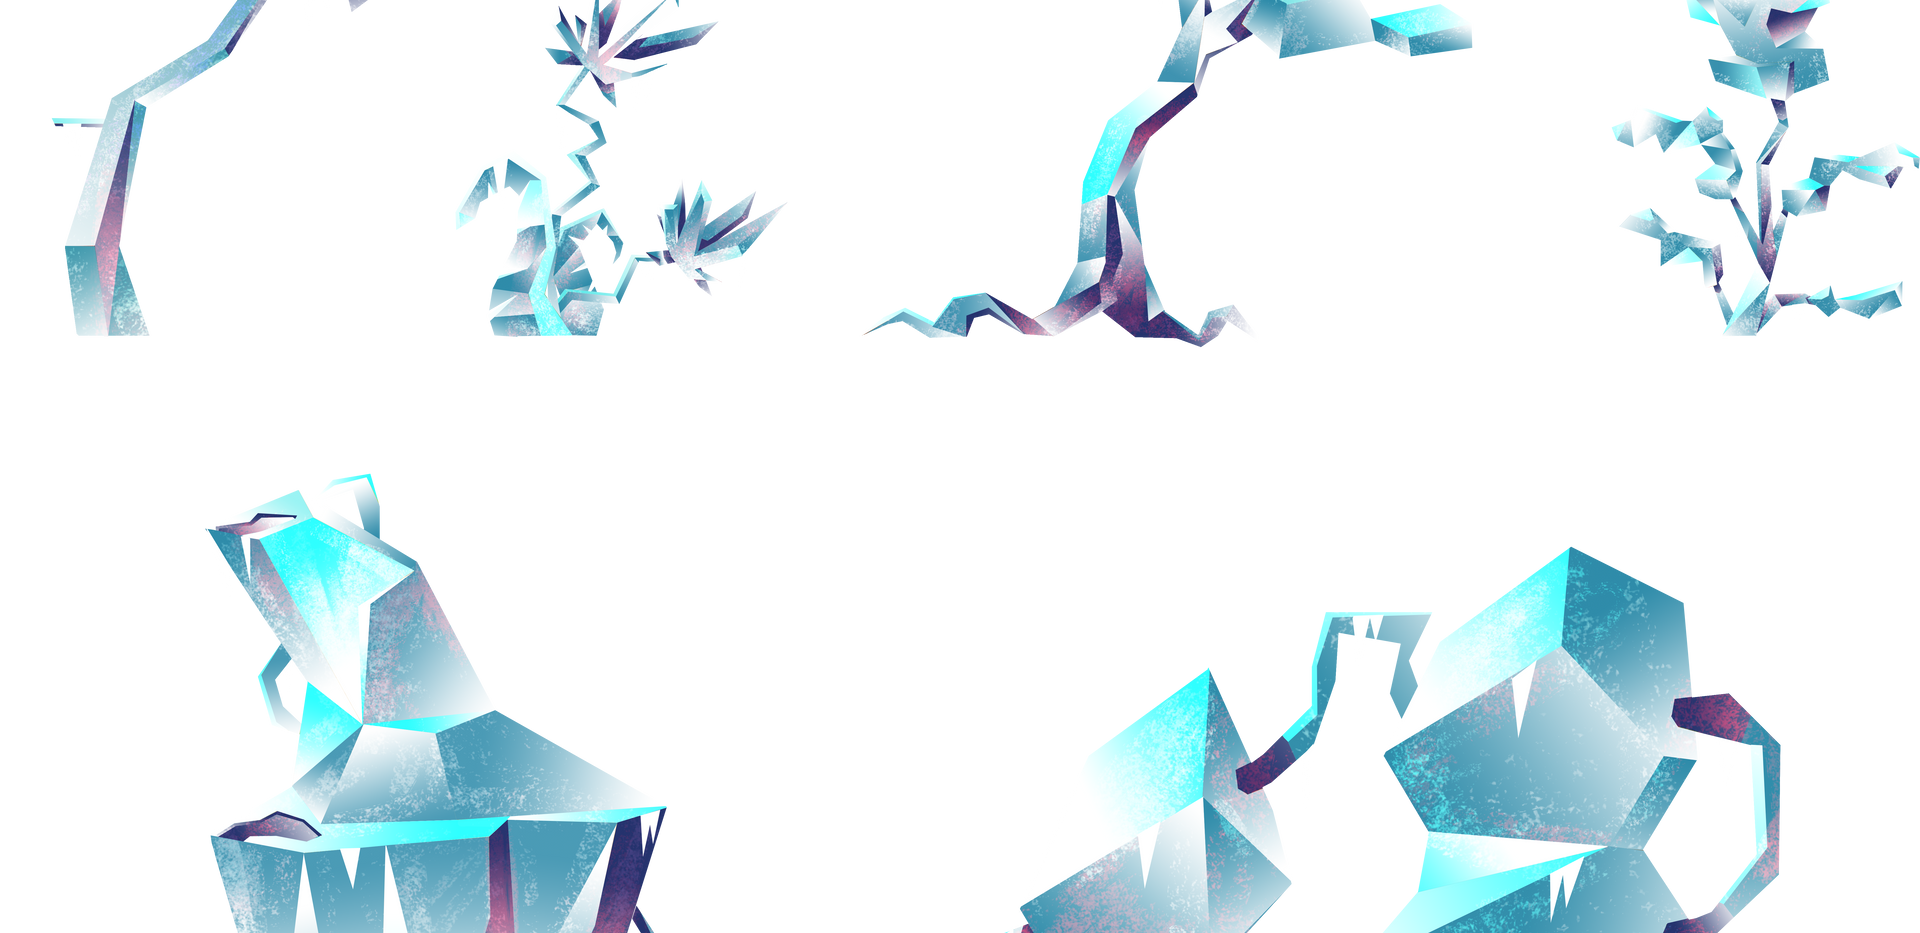 flore_glace.png